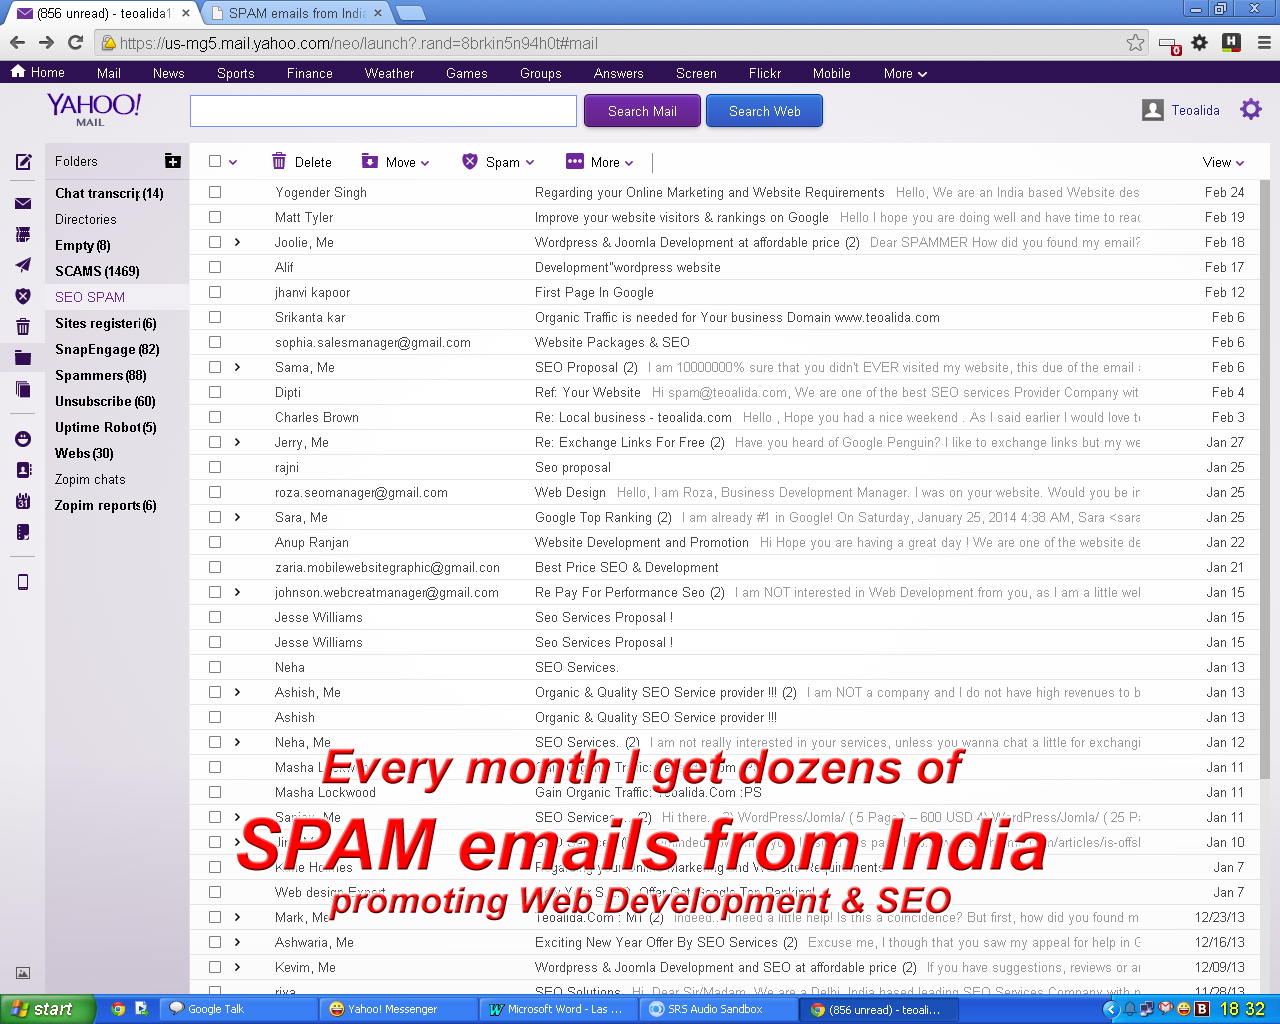 How to stop SPAM from India: Web Design & SEO services